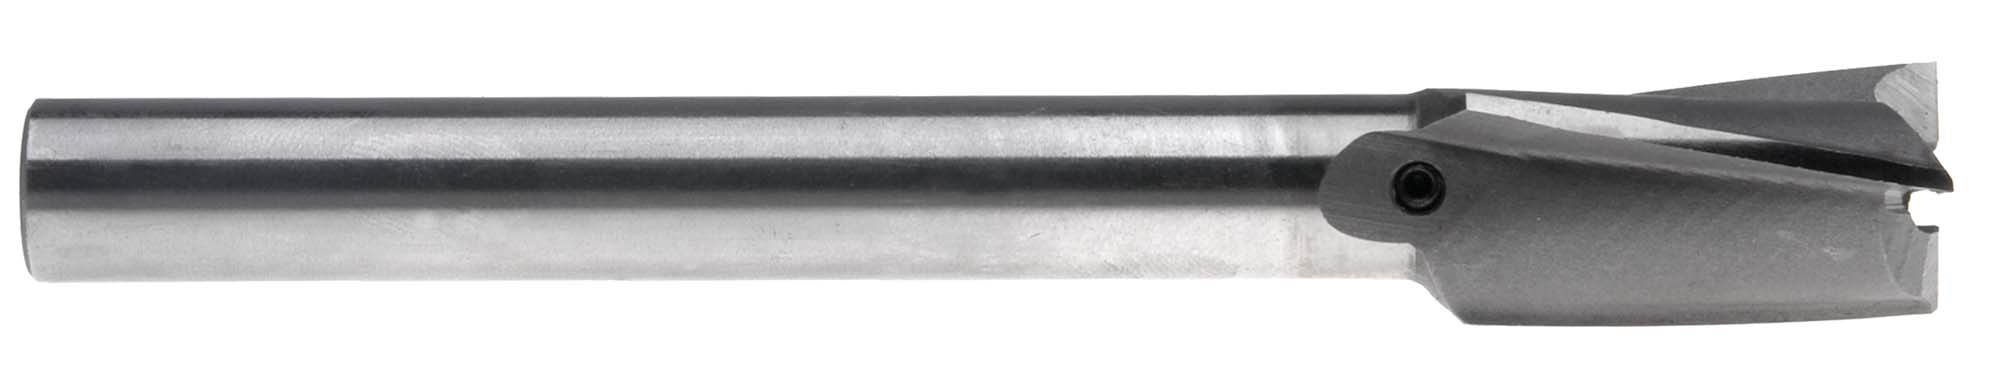 "25/32"" Straight Shank Counterbore, Interchangeable Pilot Type, High Speed Steel"